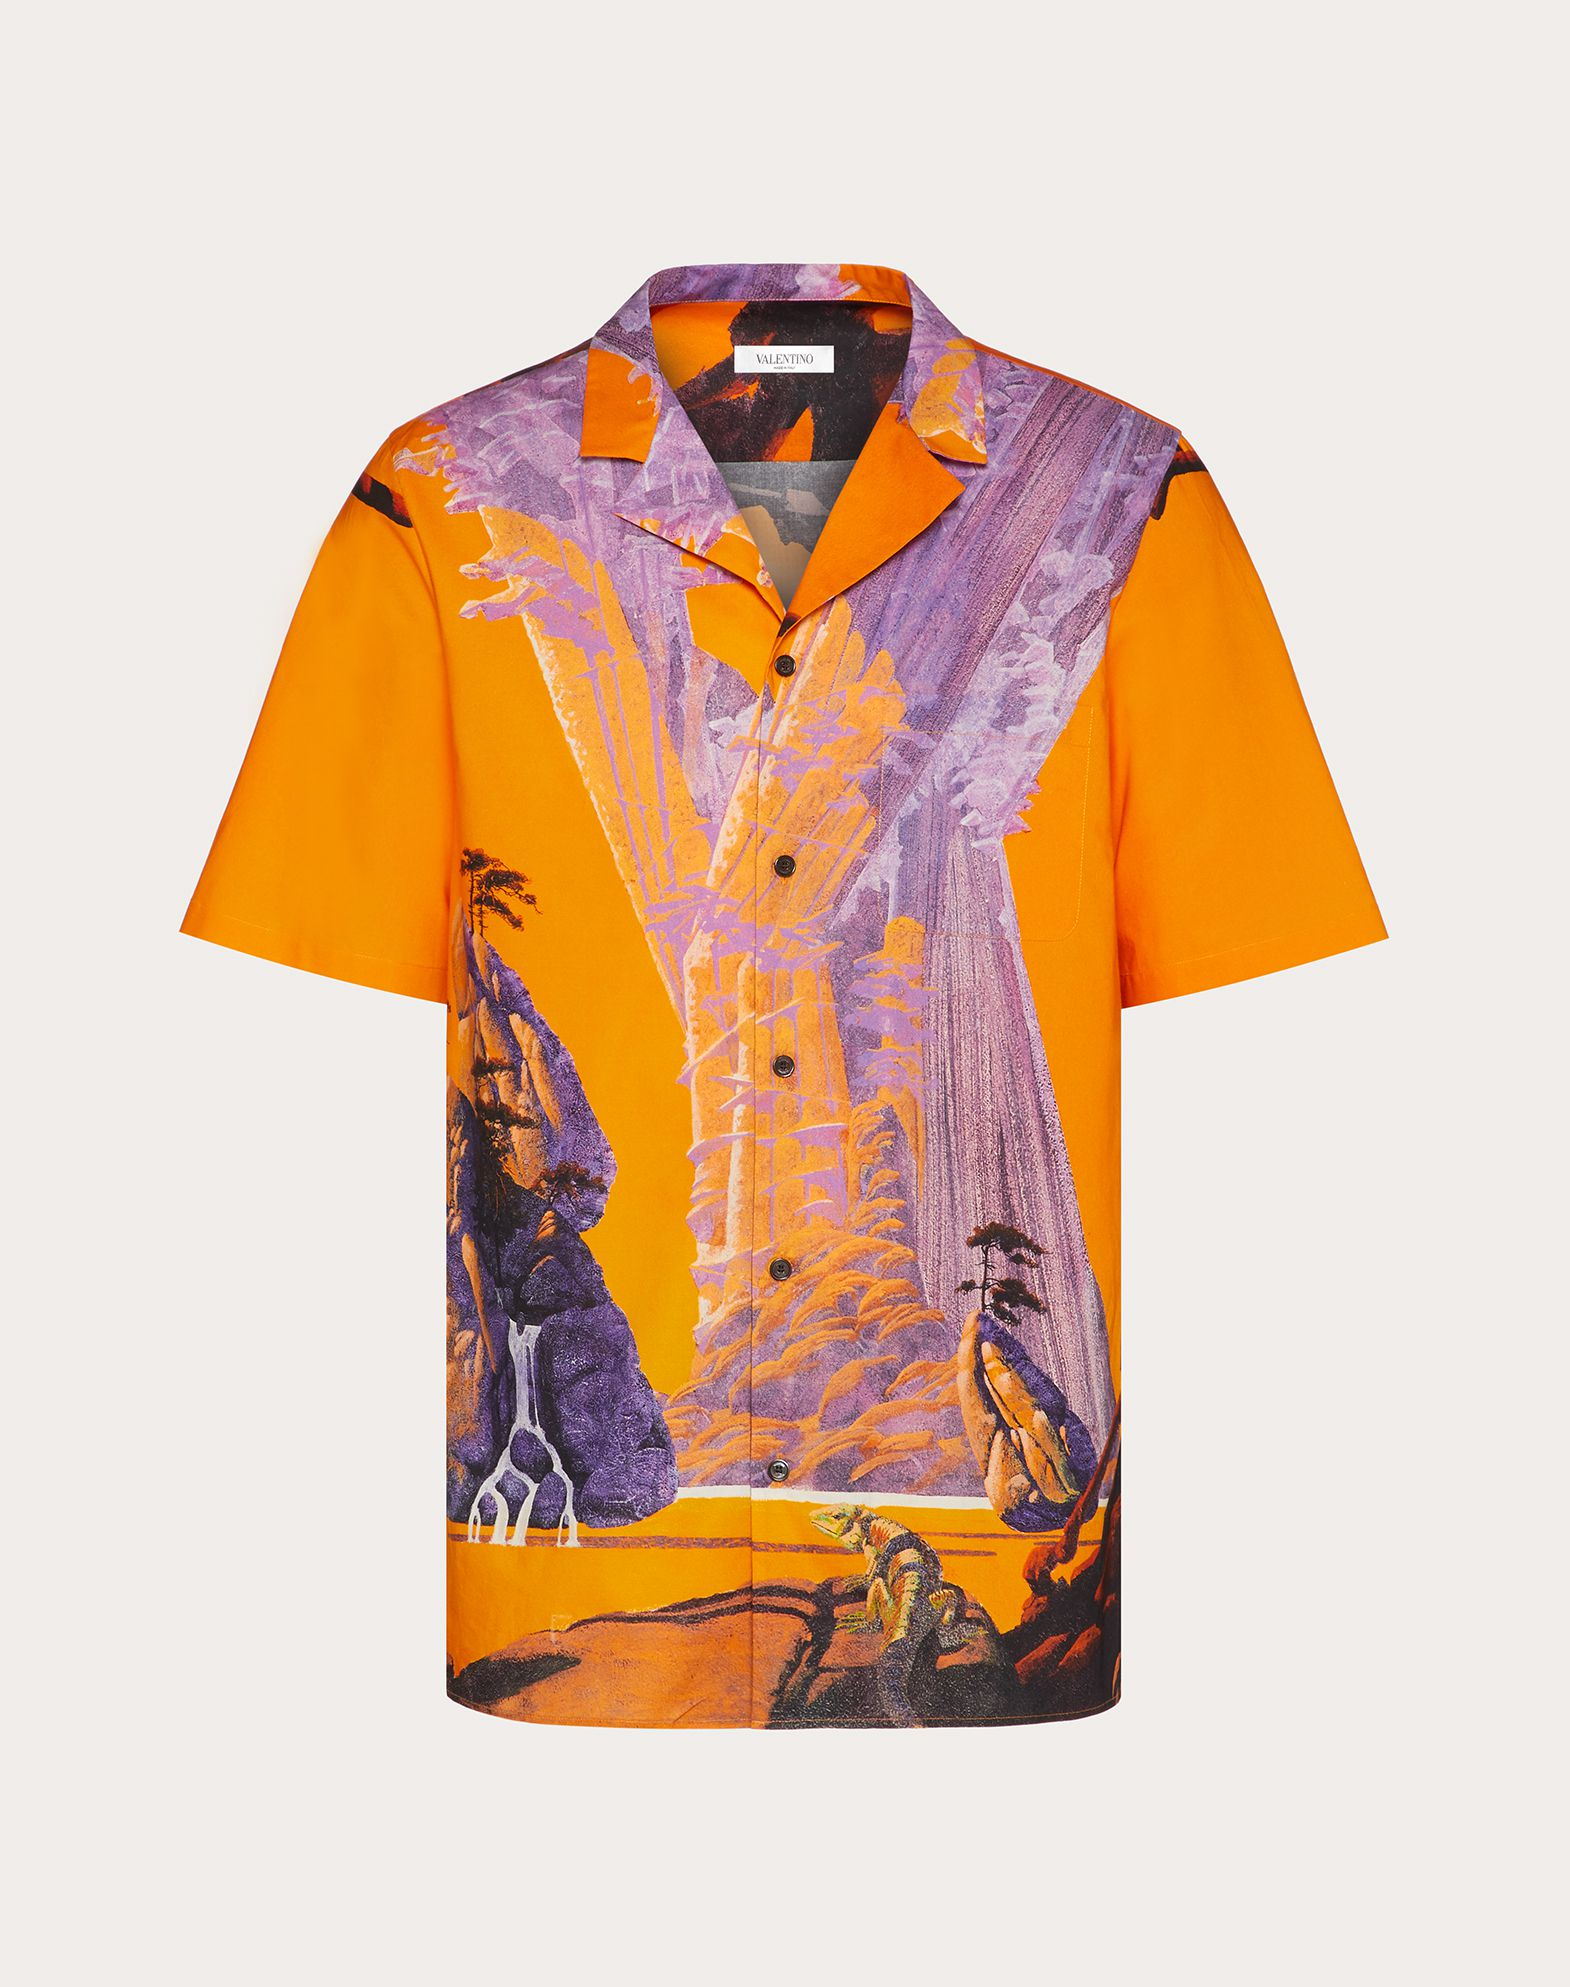 YELLOW CITY SHORT-SLEEVED SHIRT